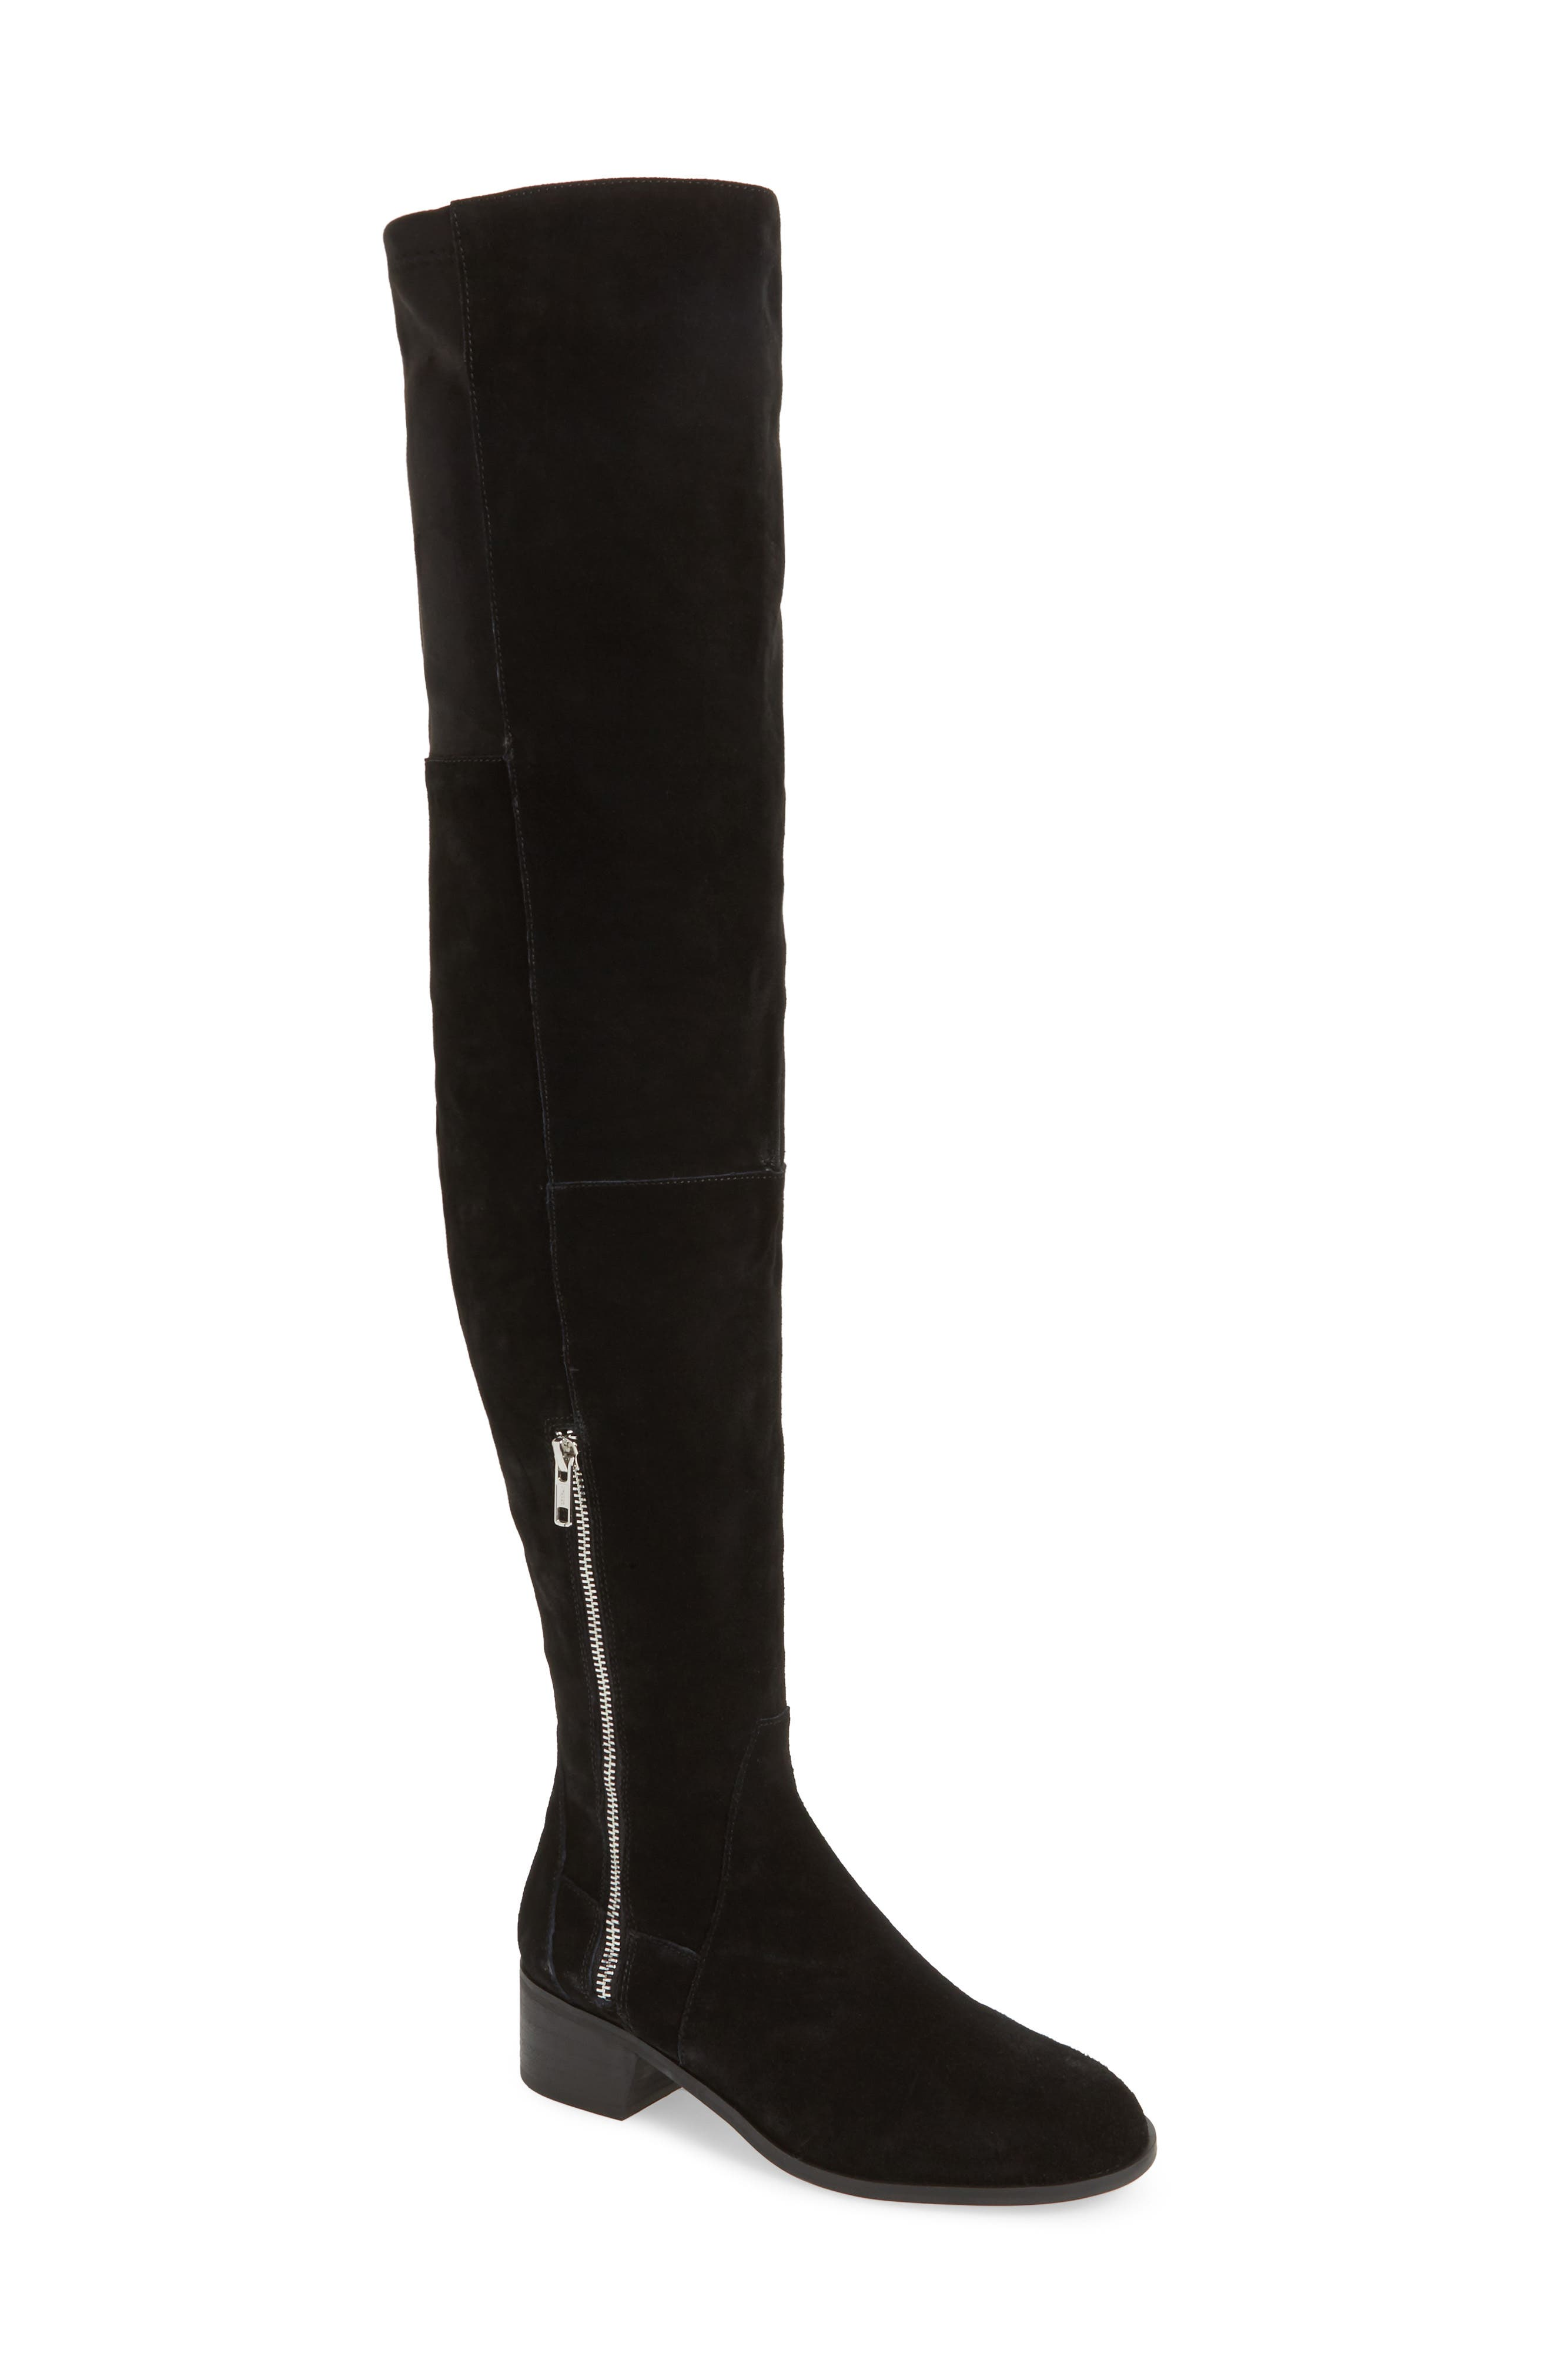 Main Image - Free People Everly Thigh High Boot (Women)